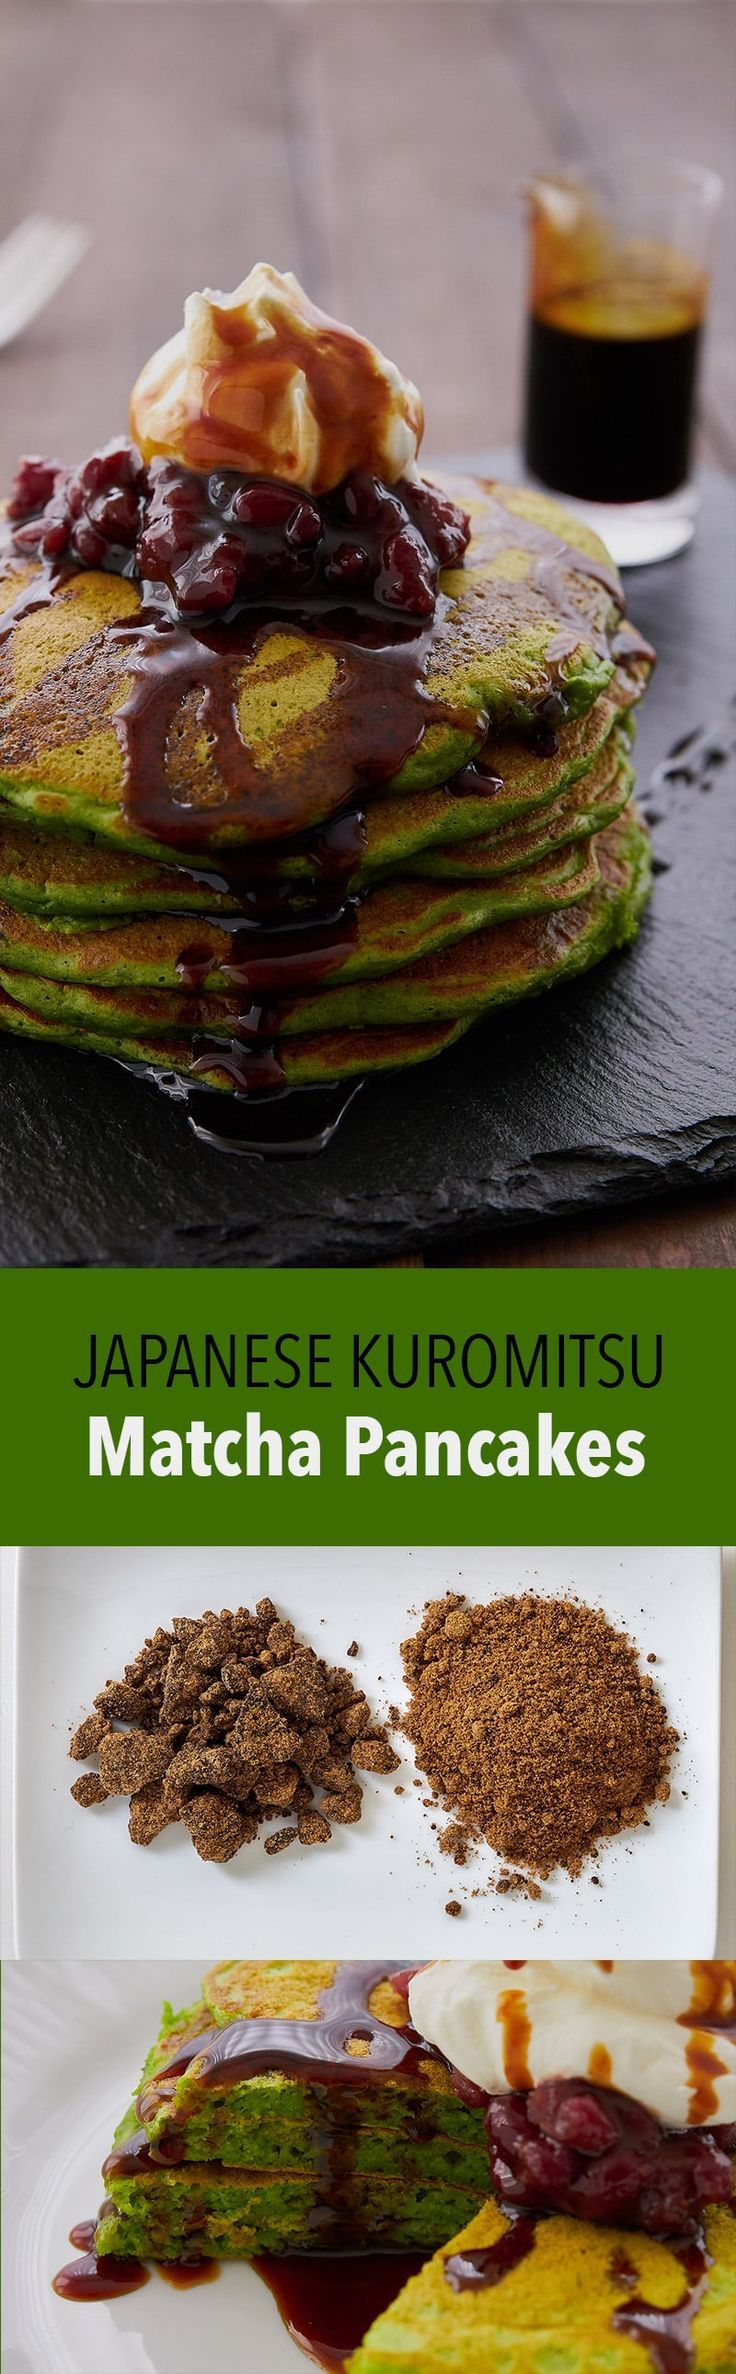 These Matcha pancakes drizzled with Japanese black syrup are not only a gorgeous shade of green, they taste amazing!